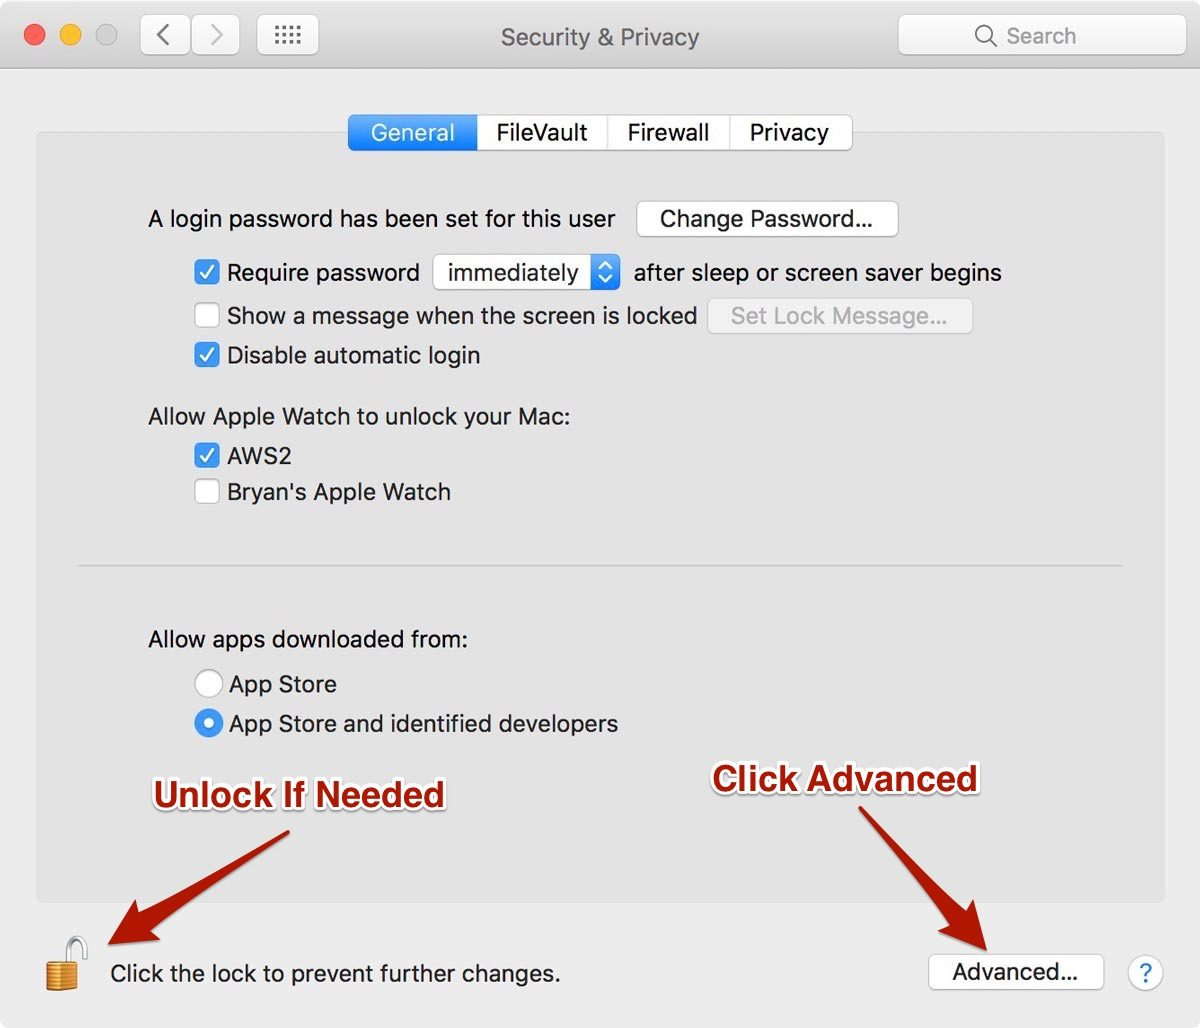 Security & Privacy Preferences in macOS Sierra